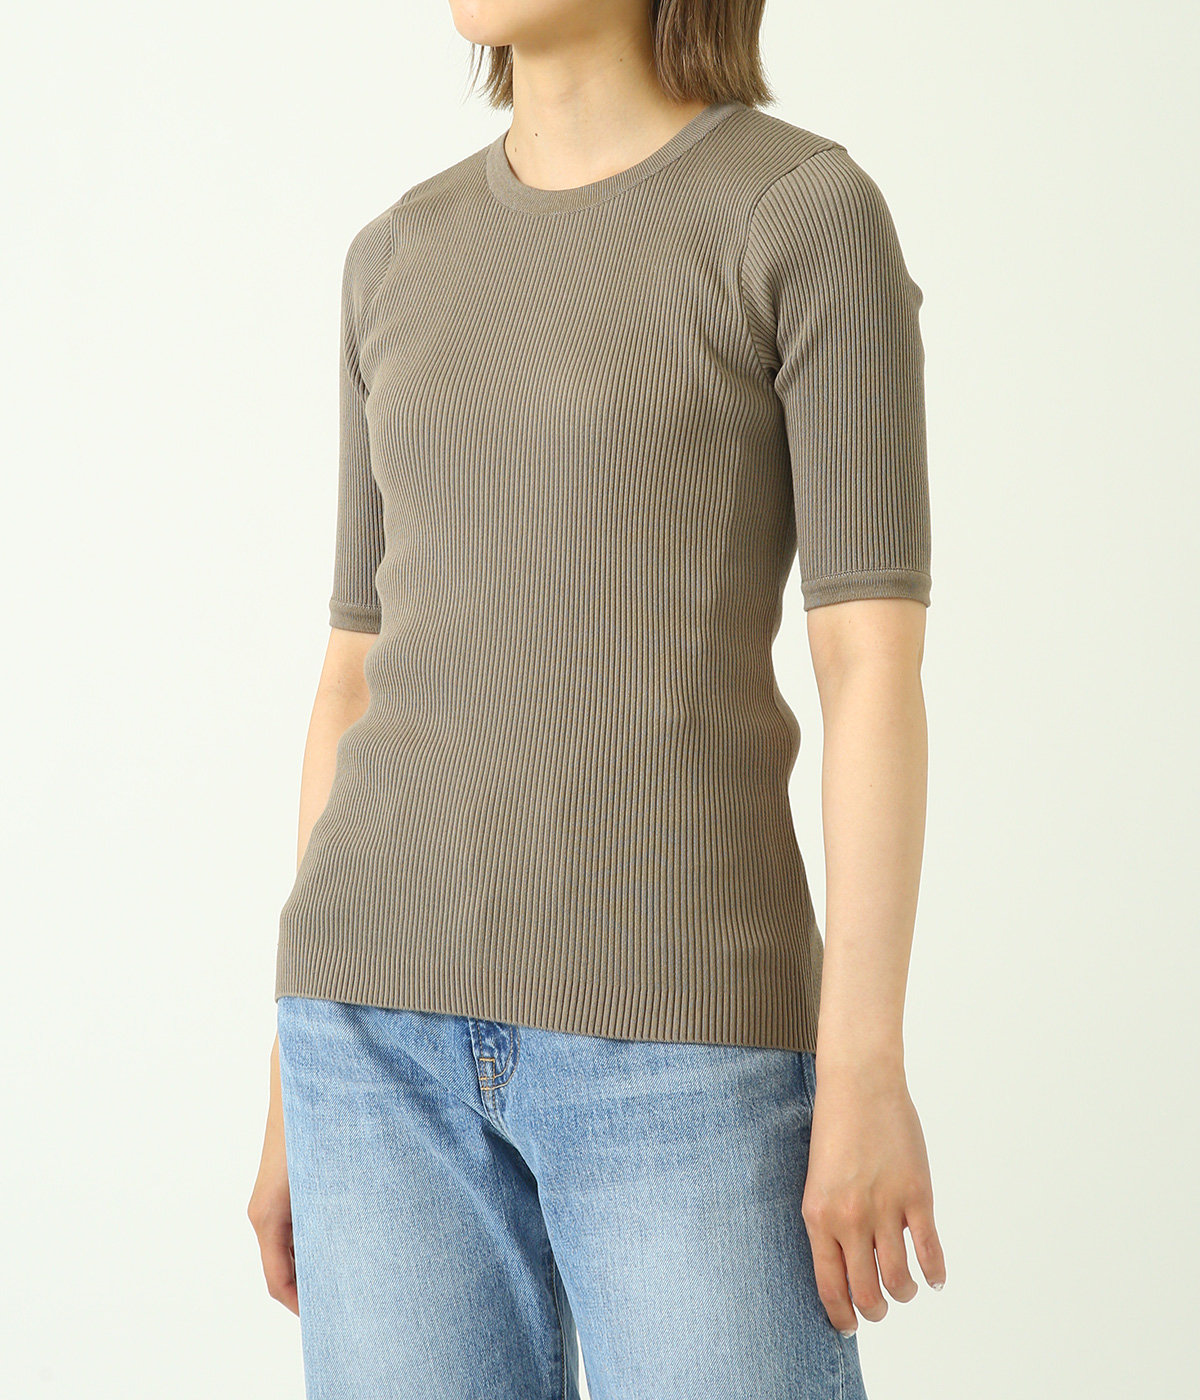 【レディース】HIGH GAUGE RIB KNIT TEE